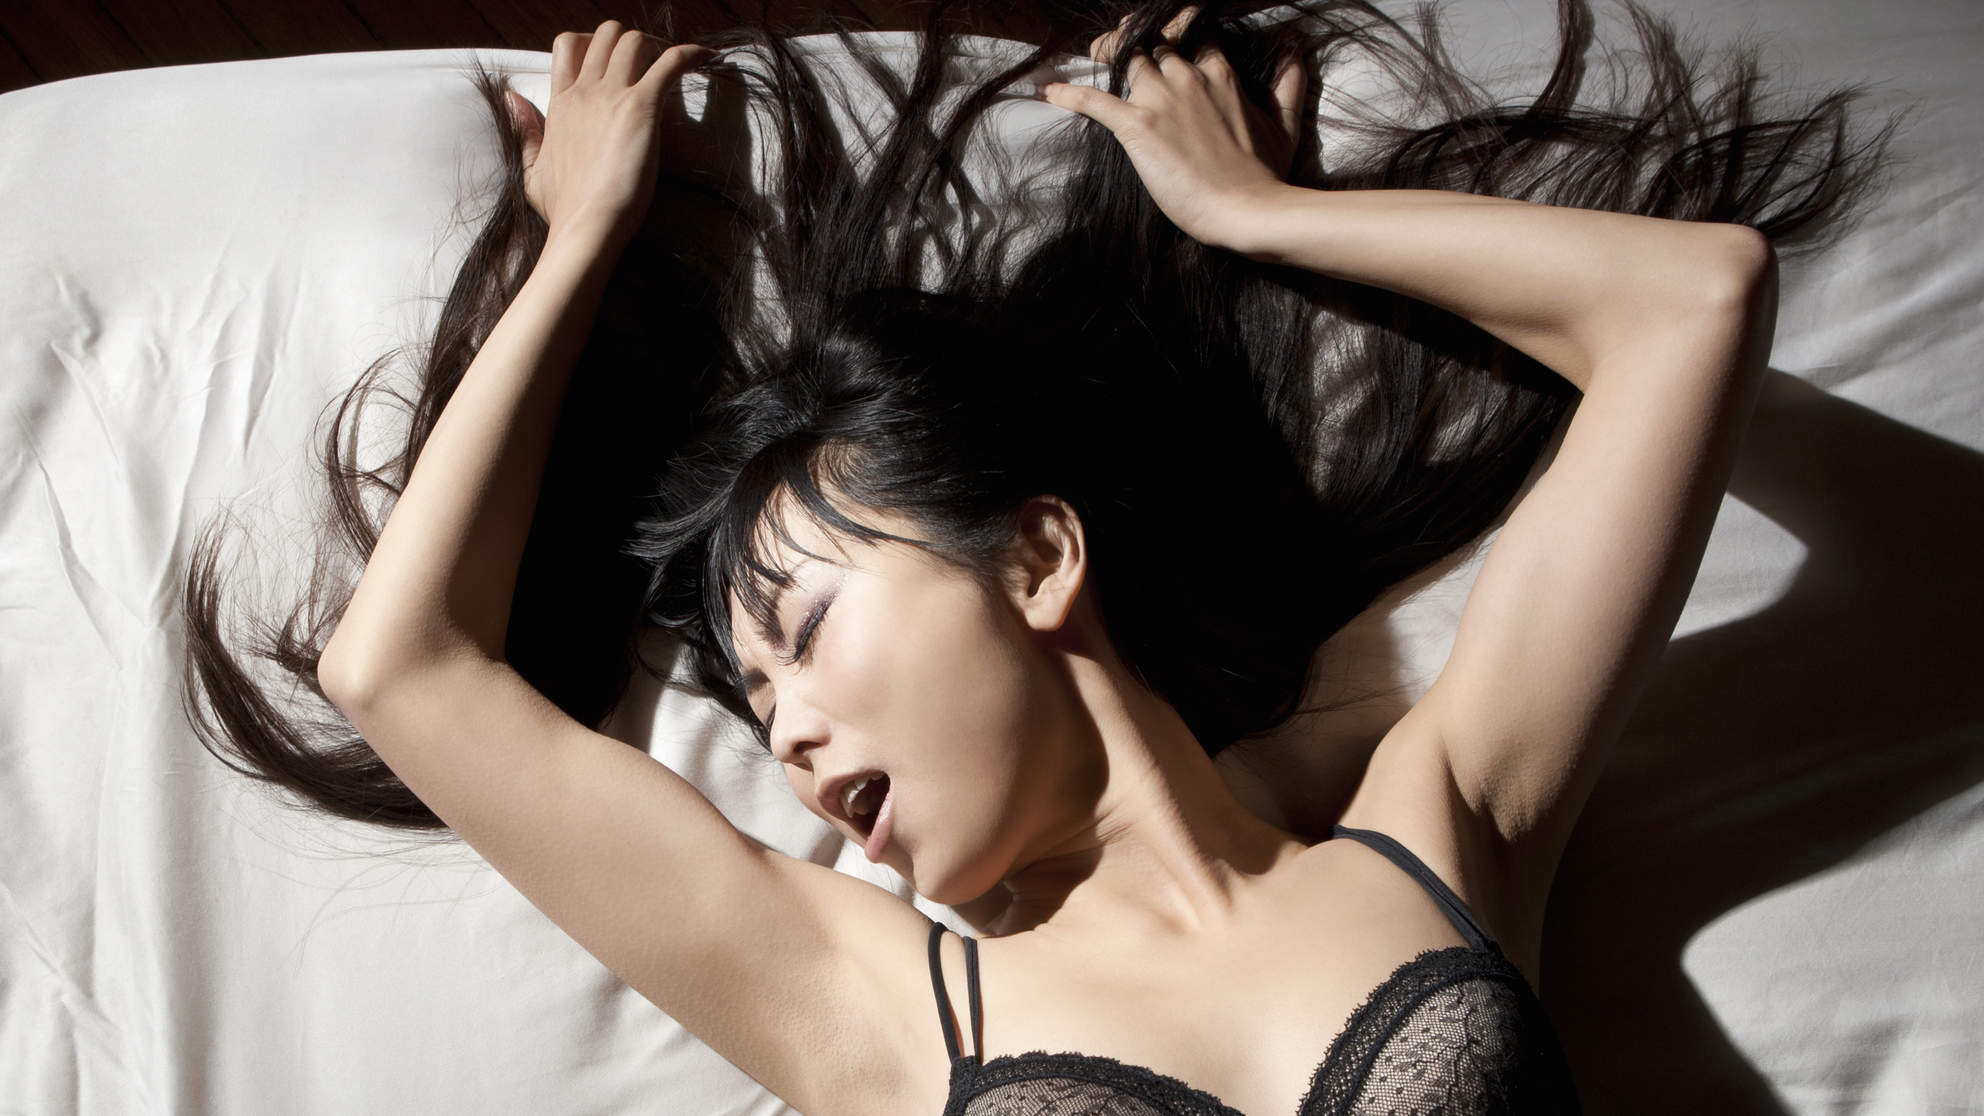 Women having trouble achieving orgasm